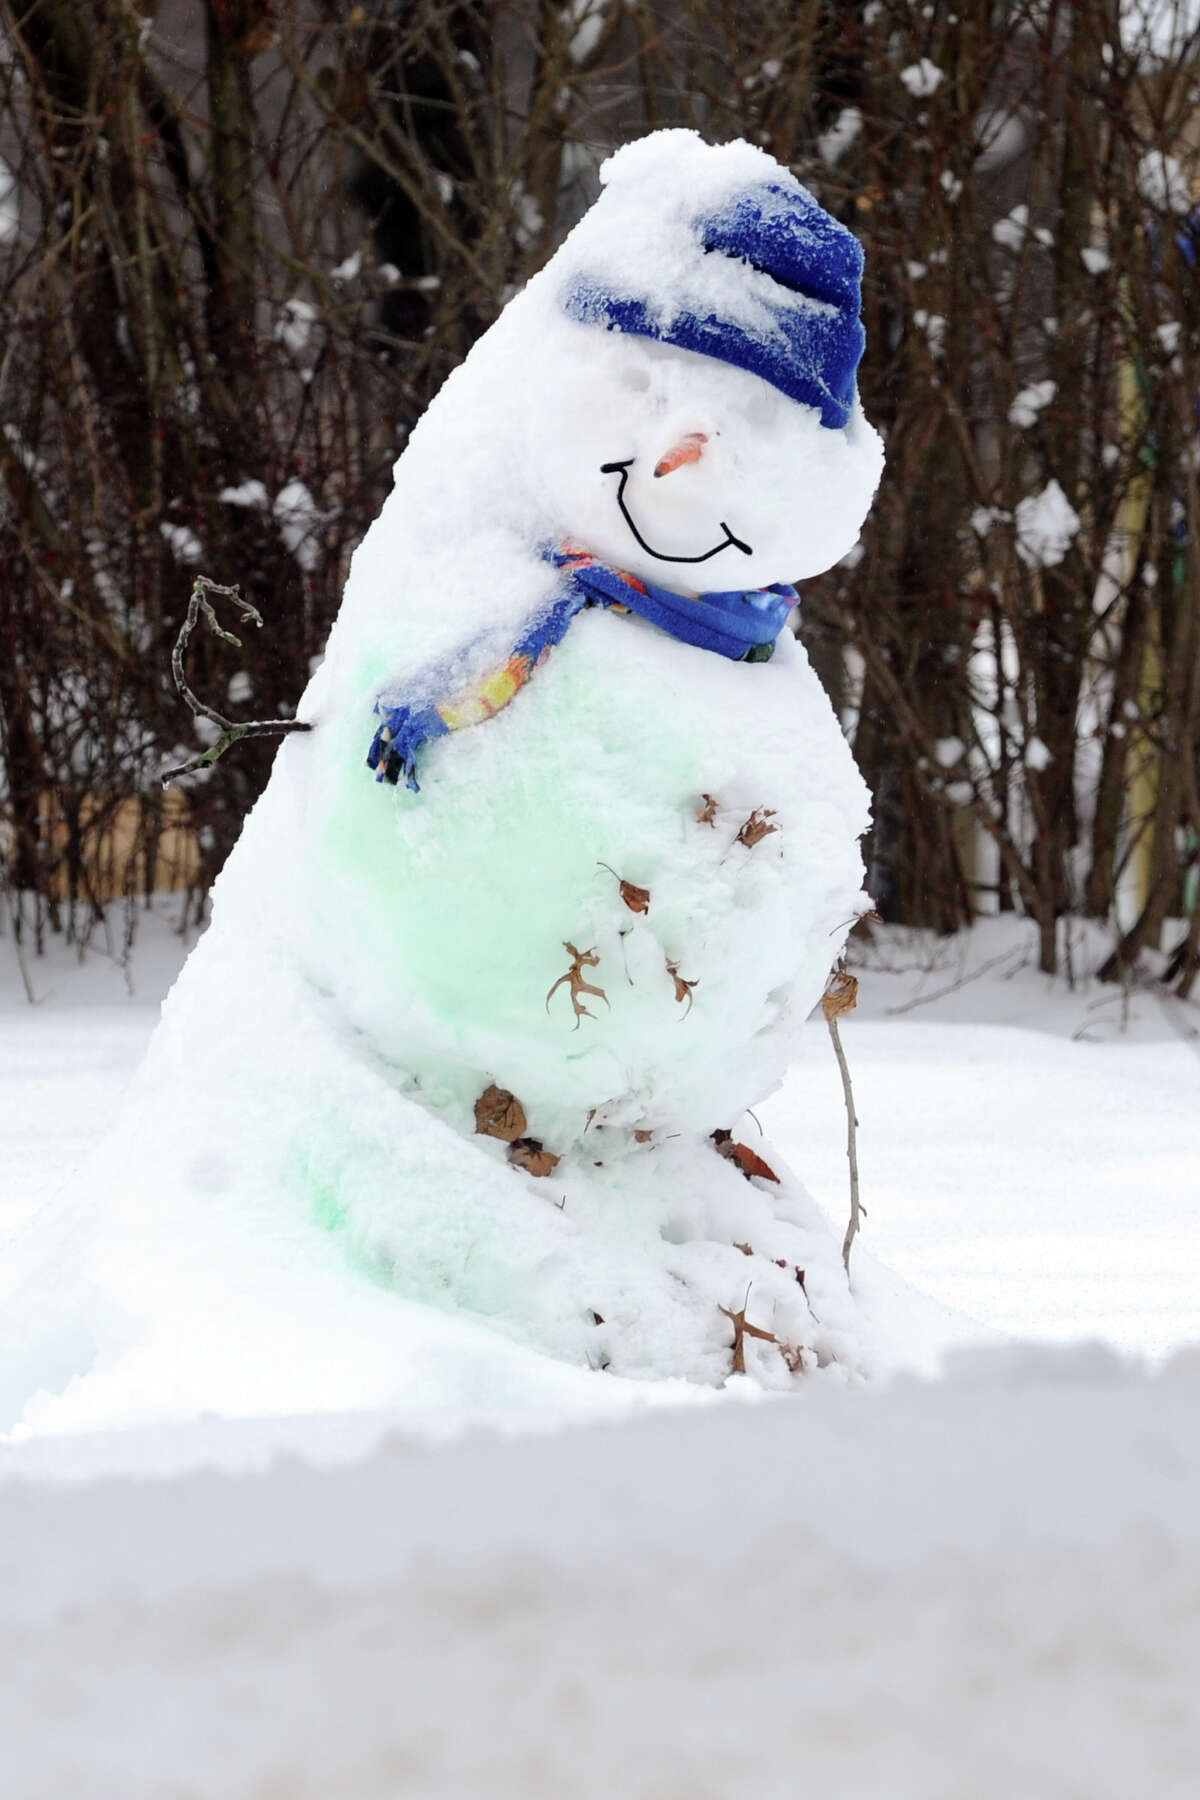 A snowman covered by a new coating of snow in Stratford, Conn., Feb. 5, 2014.